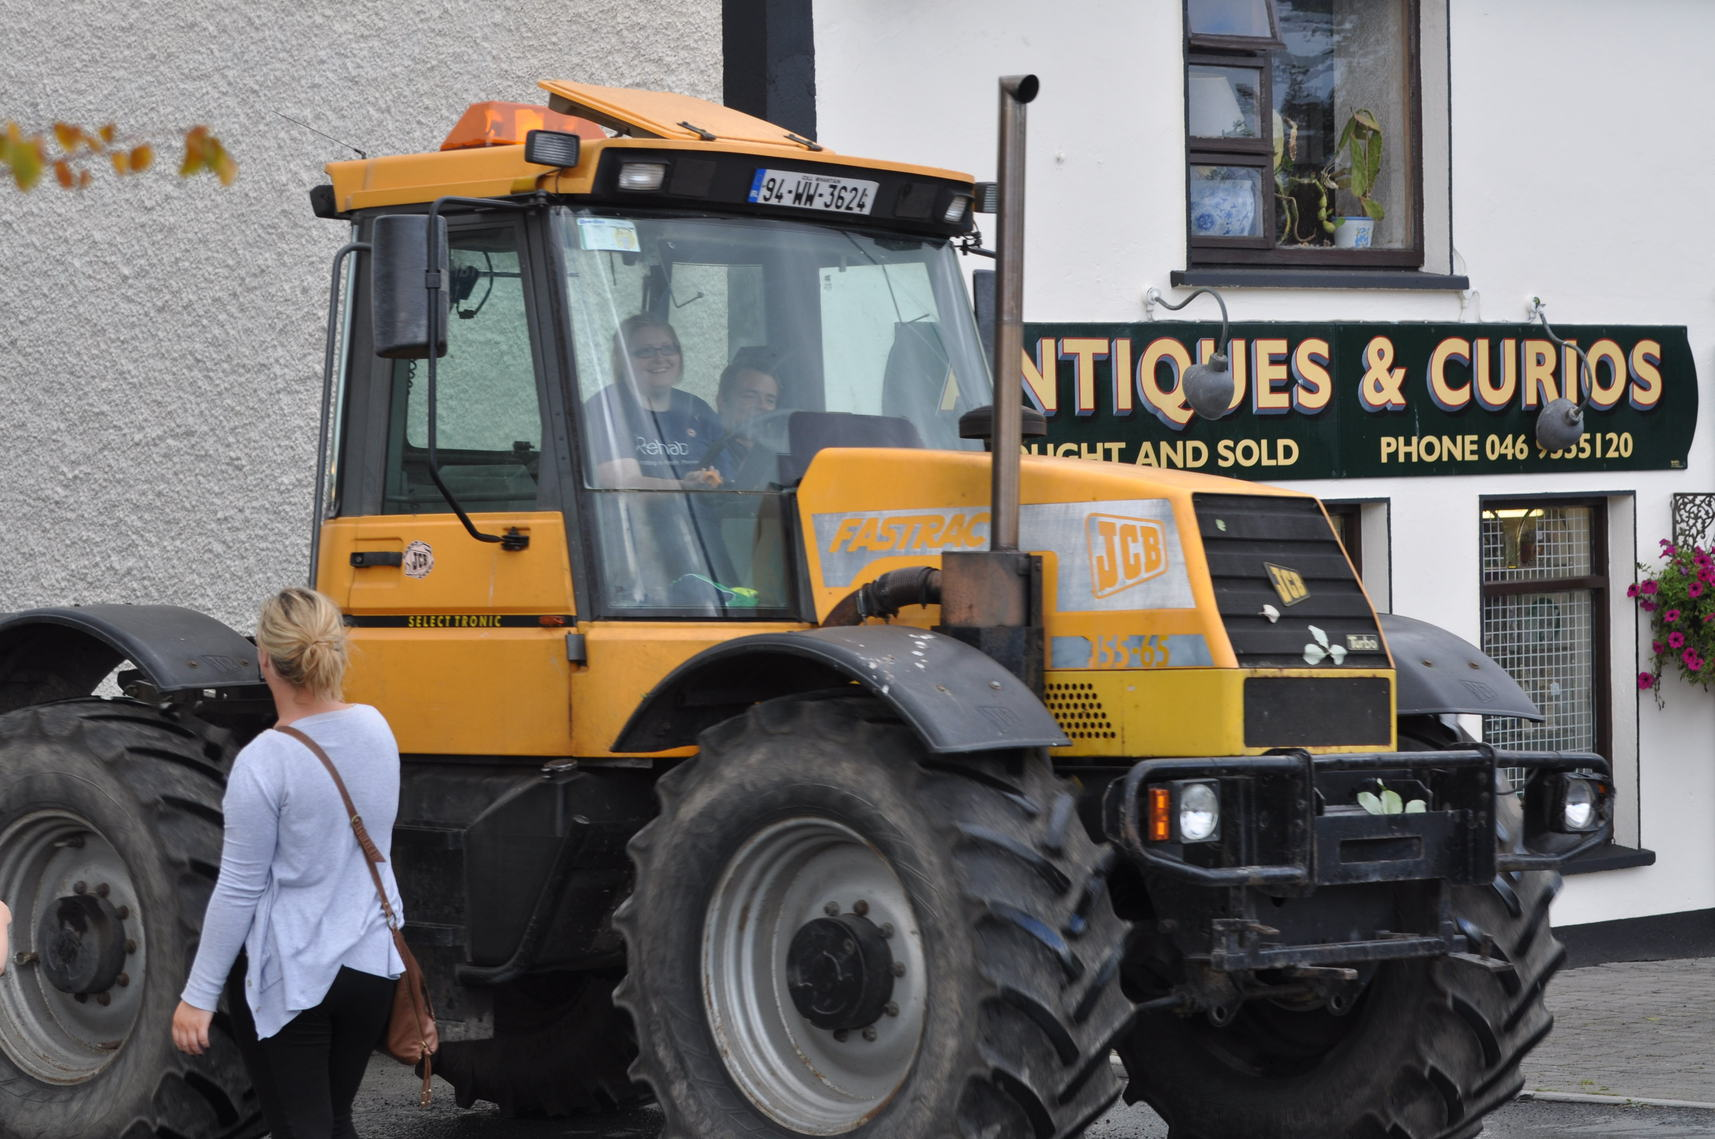 FileJCB Fastrac 155 65 On Road